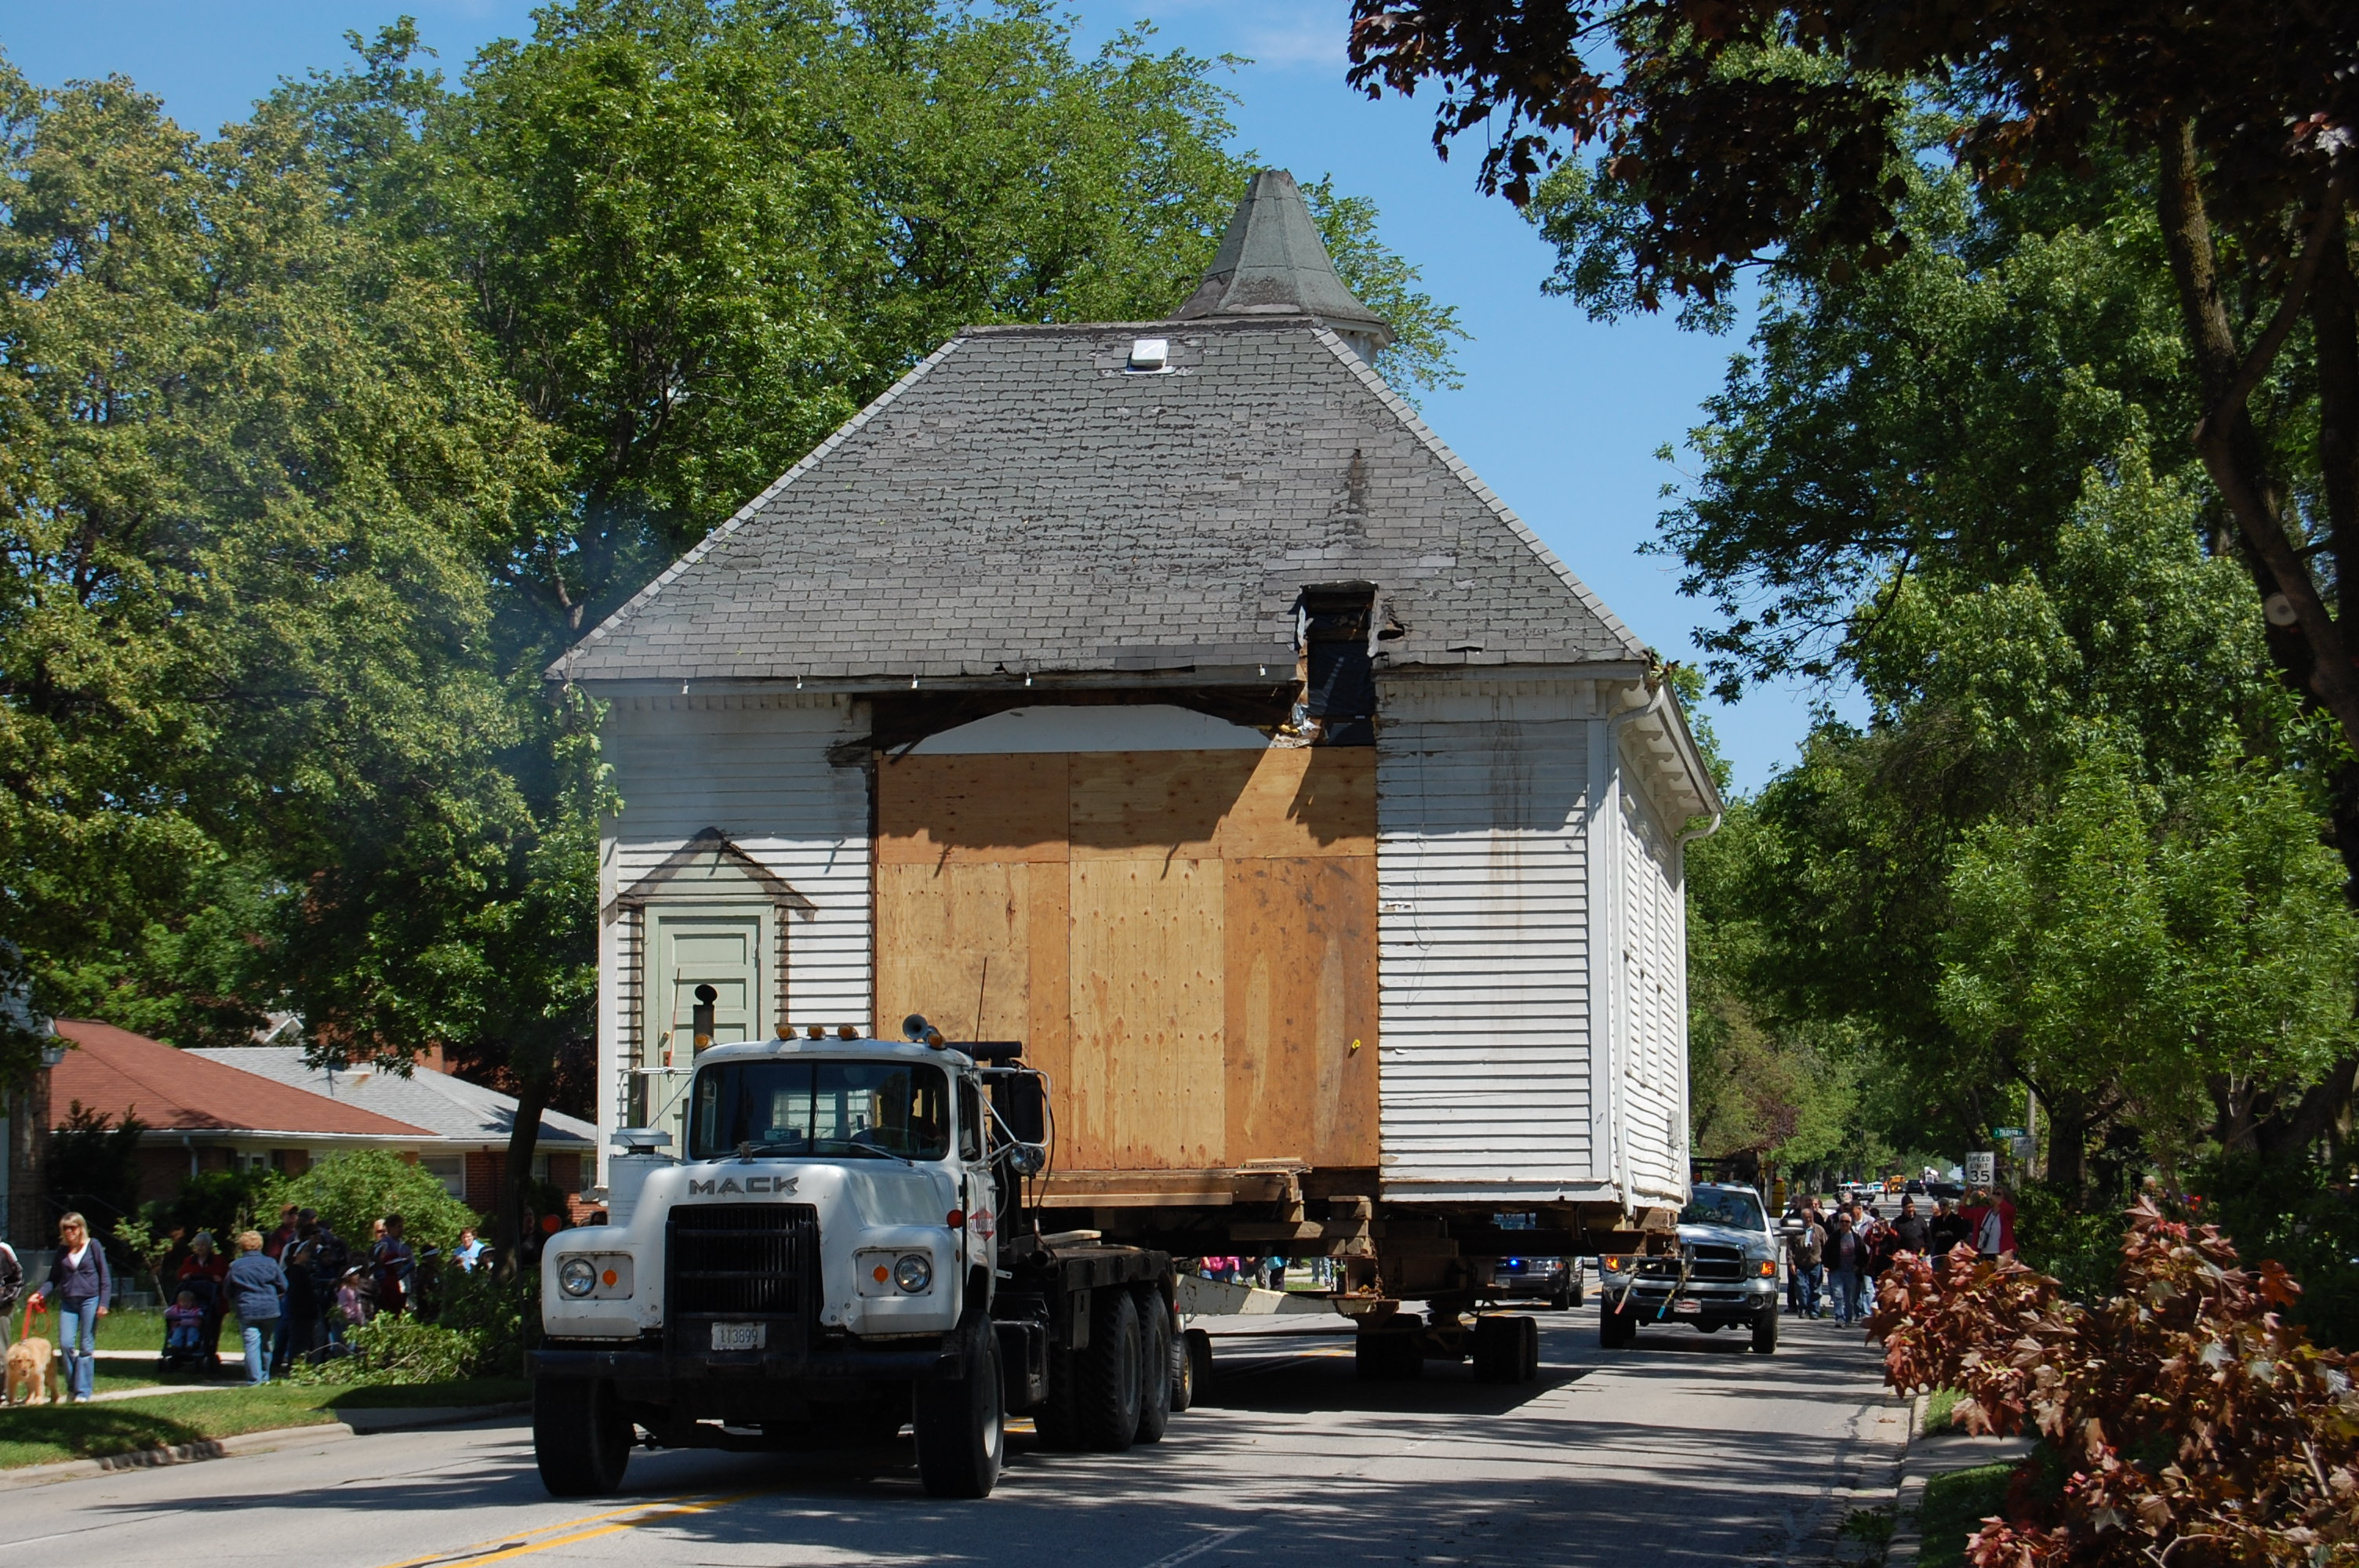 Central-School-moves-down-Route-83-Mount-Prospect-IL-5-28-08-photo-by-Frank-Corry-1